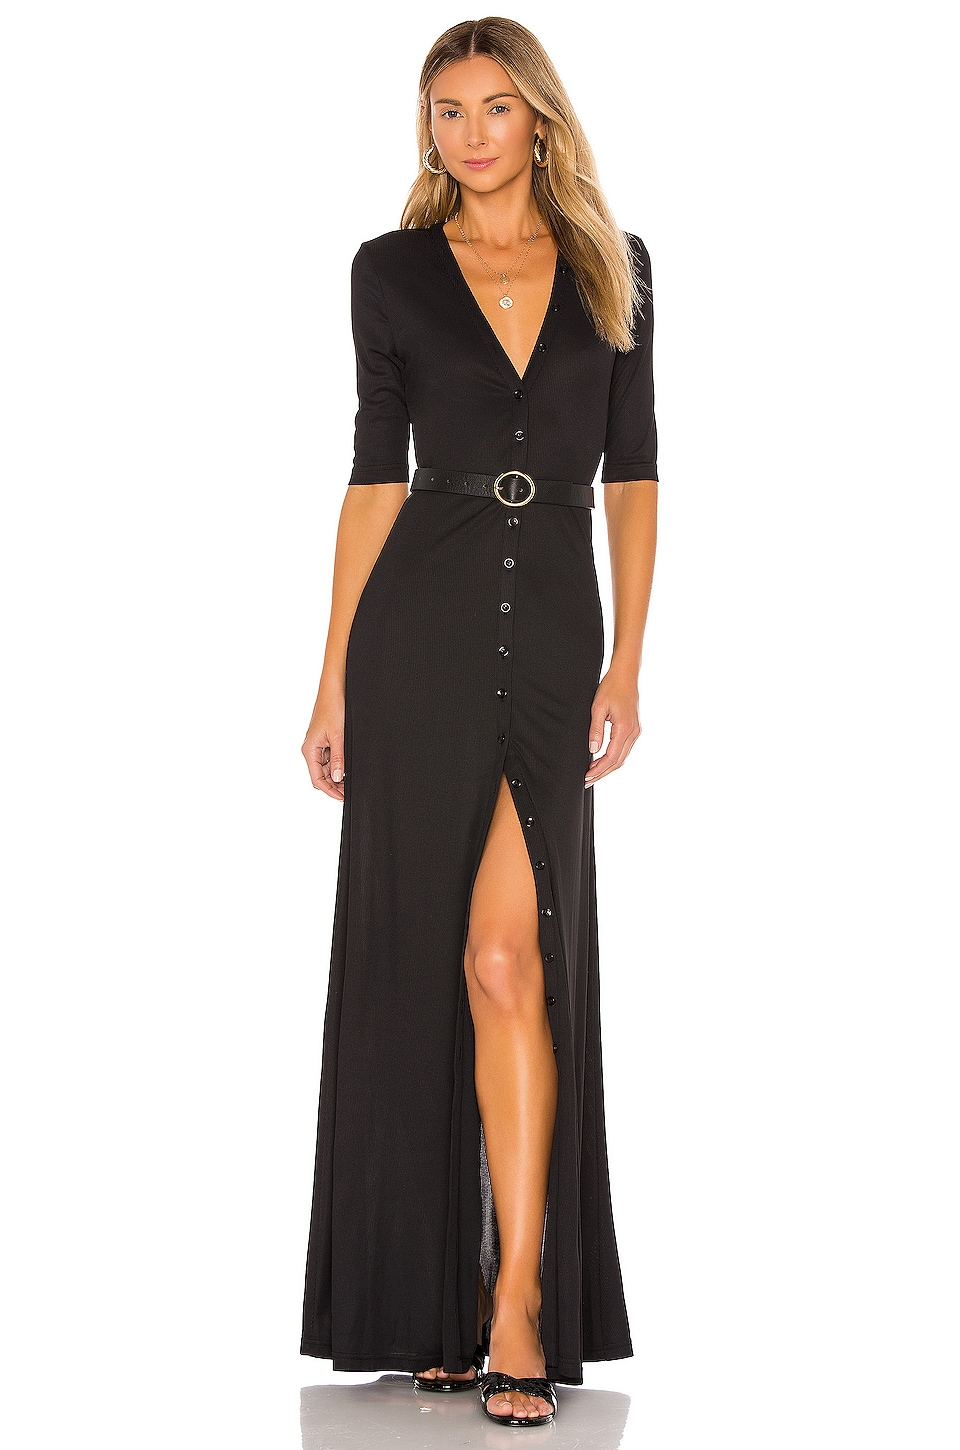 The Esperanza Maxi Dress             L'Academie                                                                                                       CA$ 226.98 23